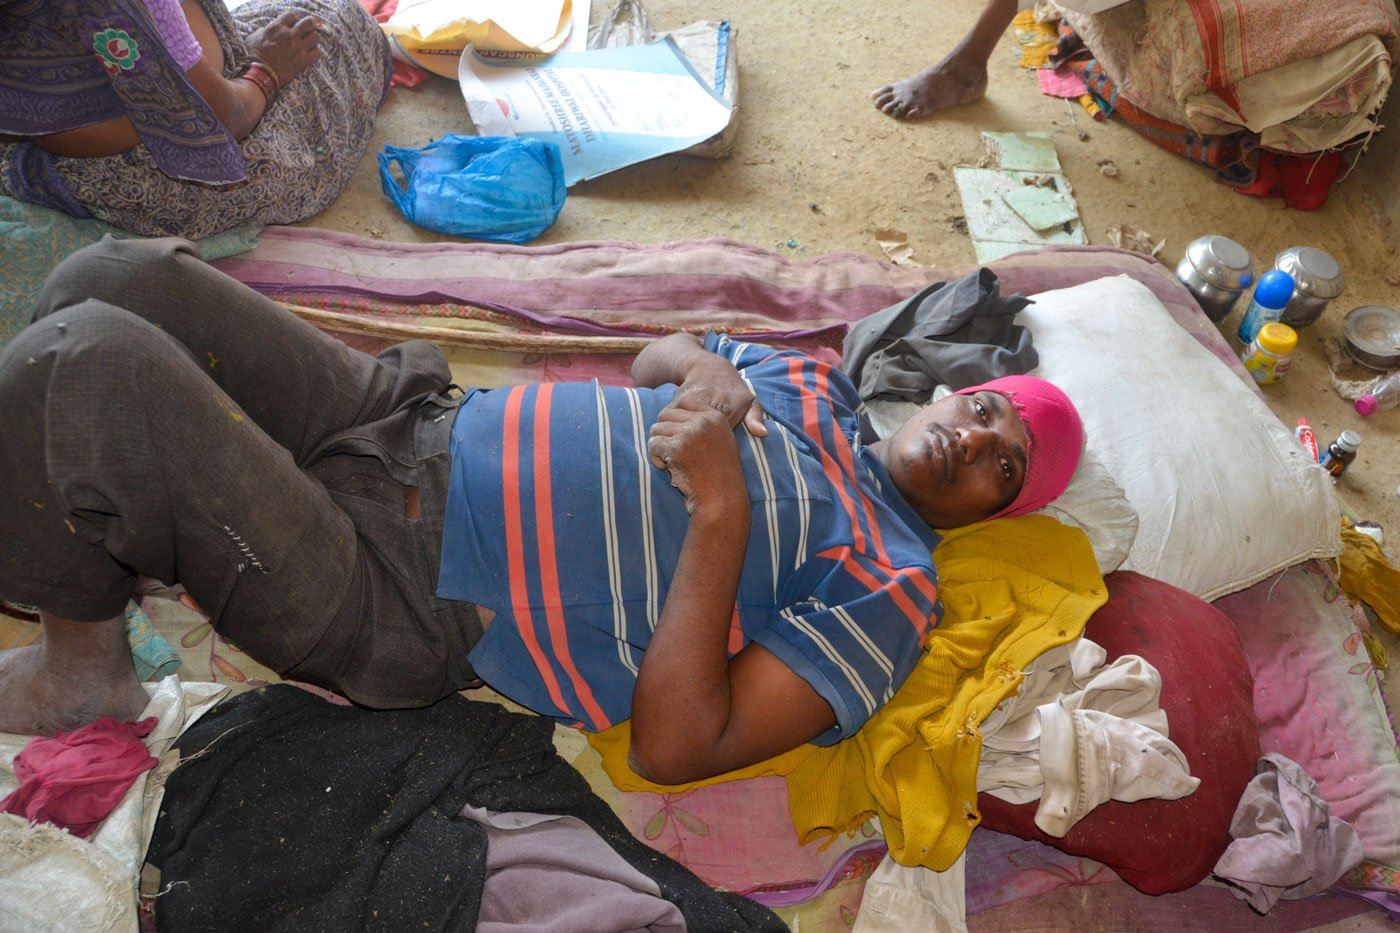 Sandeep is bedridden, paralysed from the waist down. Shantabai is worried about finding food to feed him (file photo)